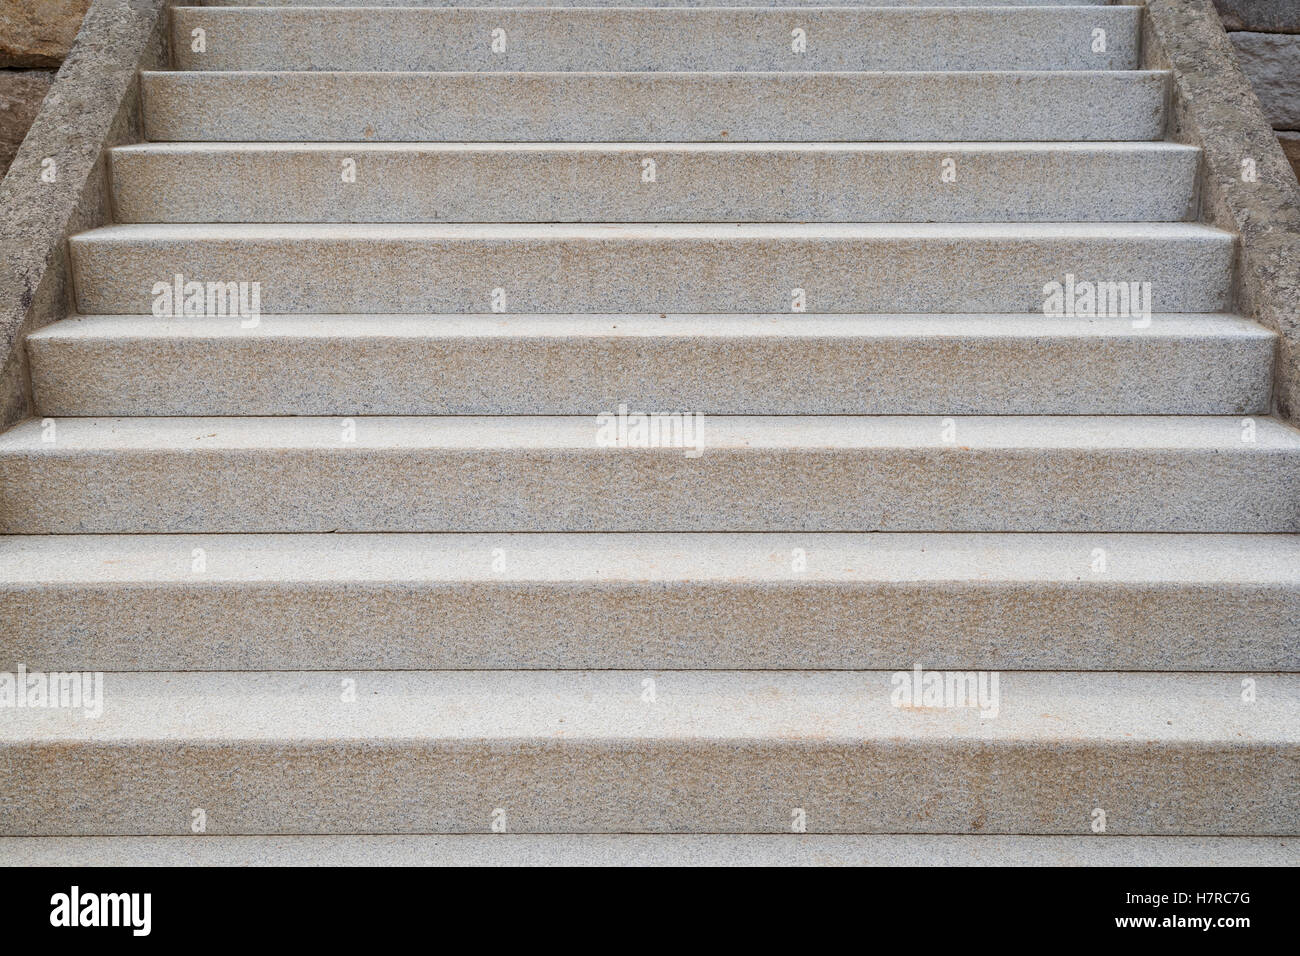 Granite stone stairs viewed from the front. - Stock Image